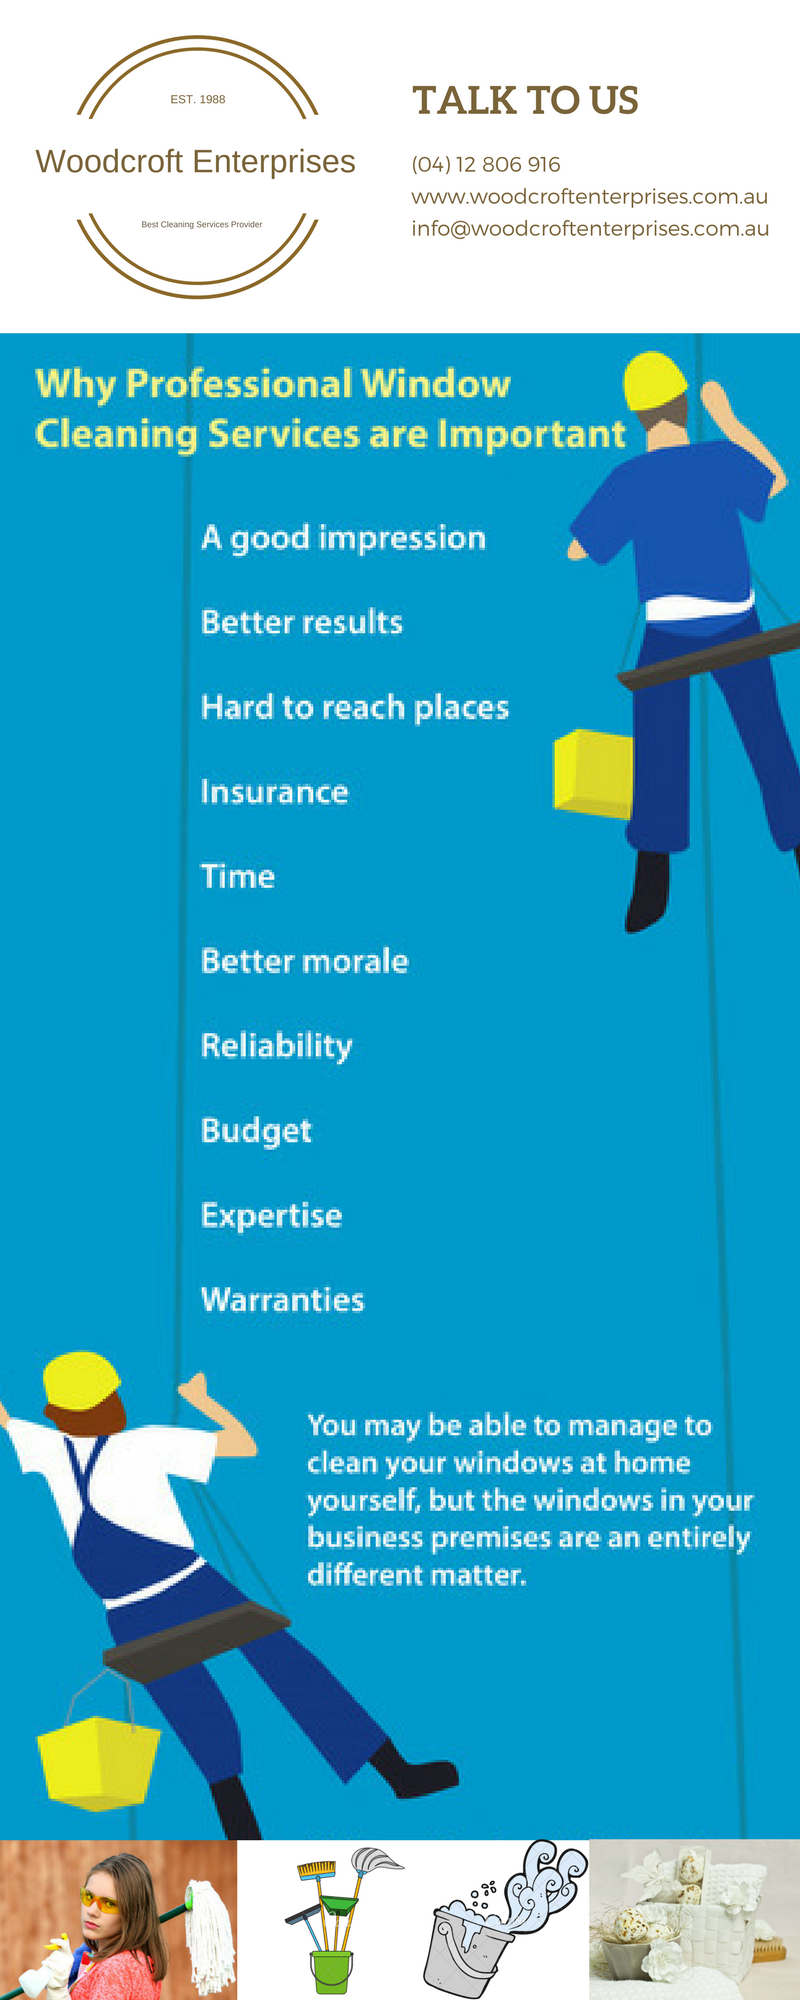 Professional Cleaners for Window Cleaning for Office - INFOGRAPHIC